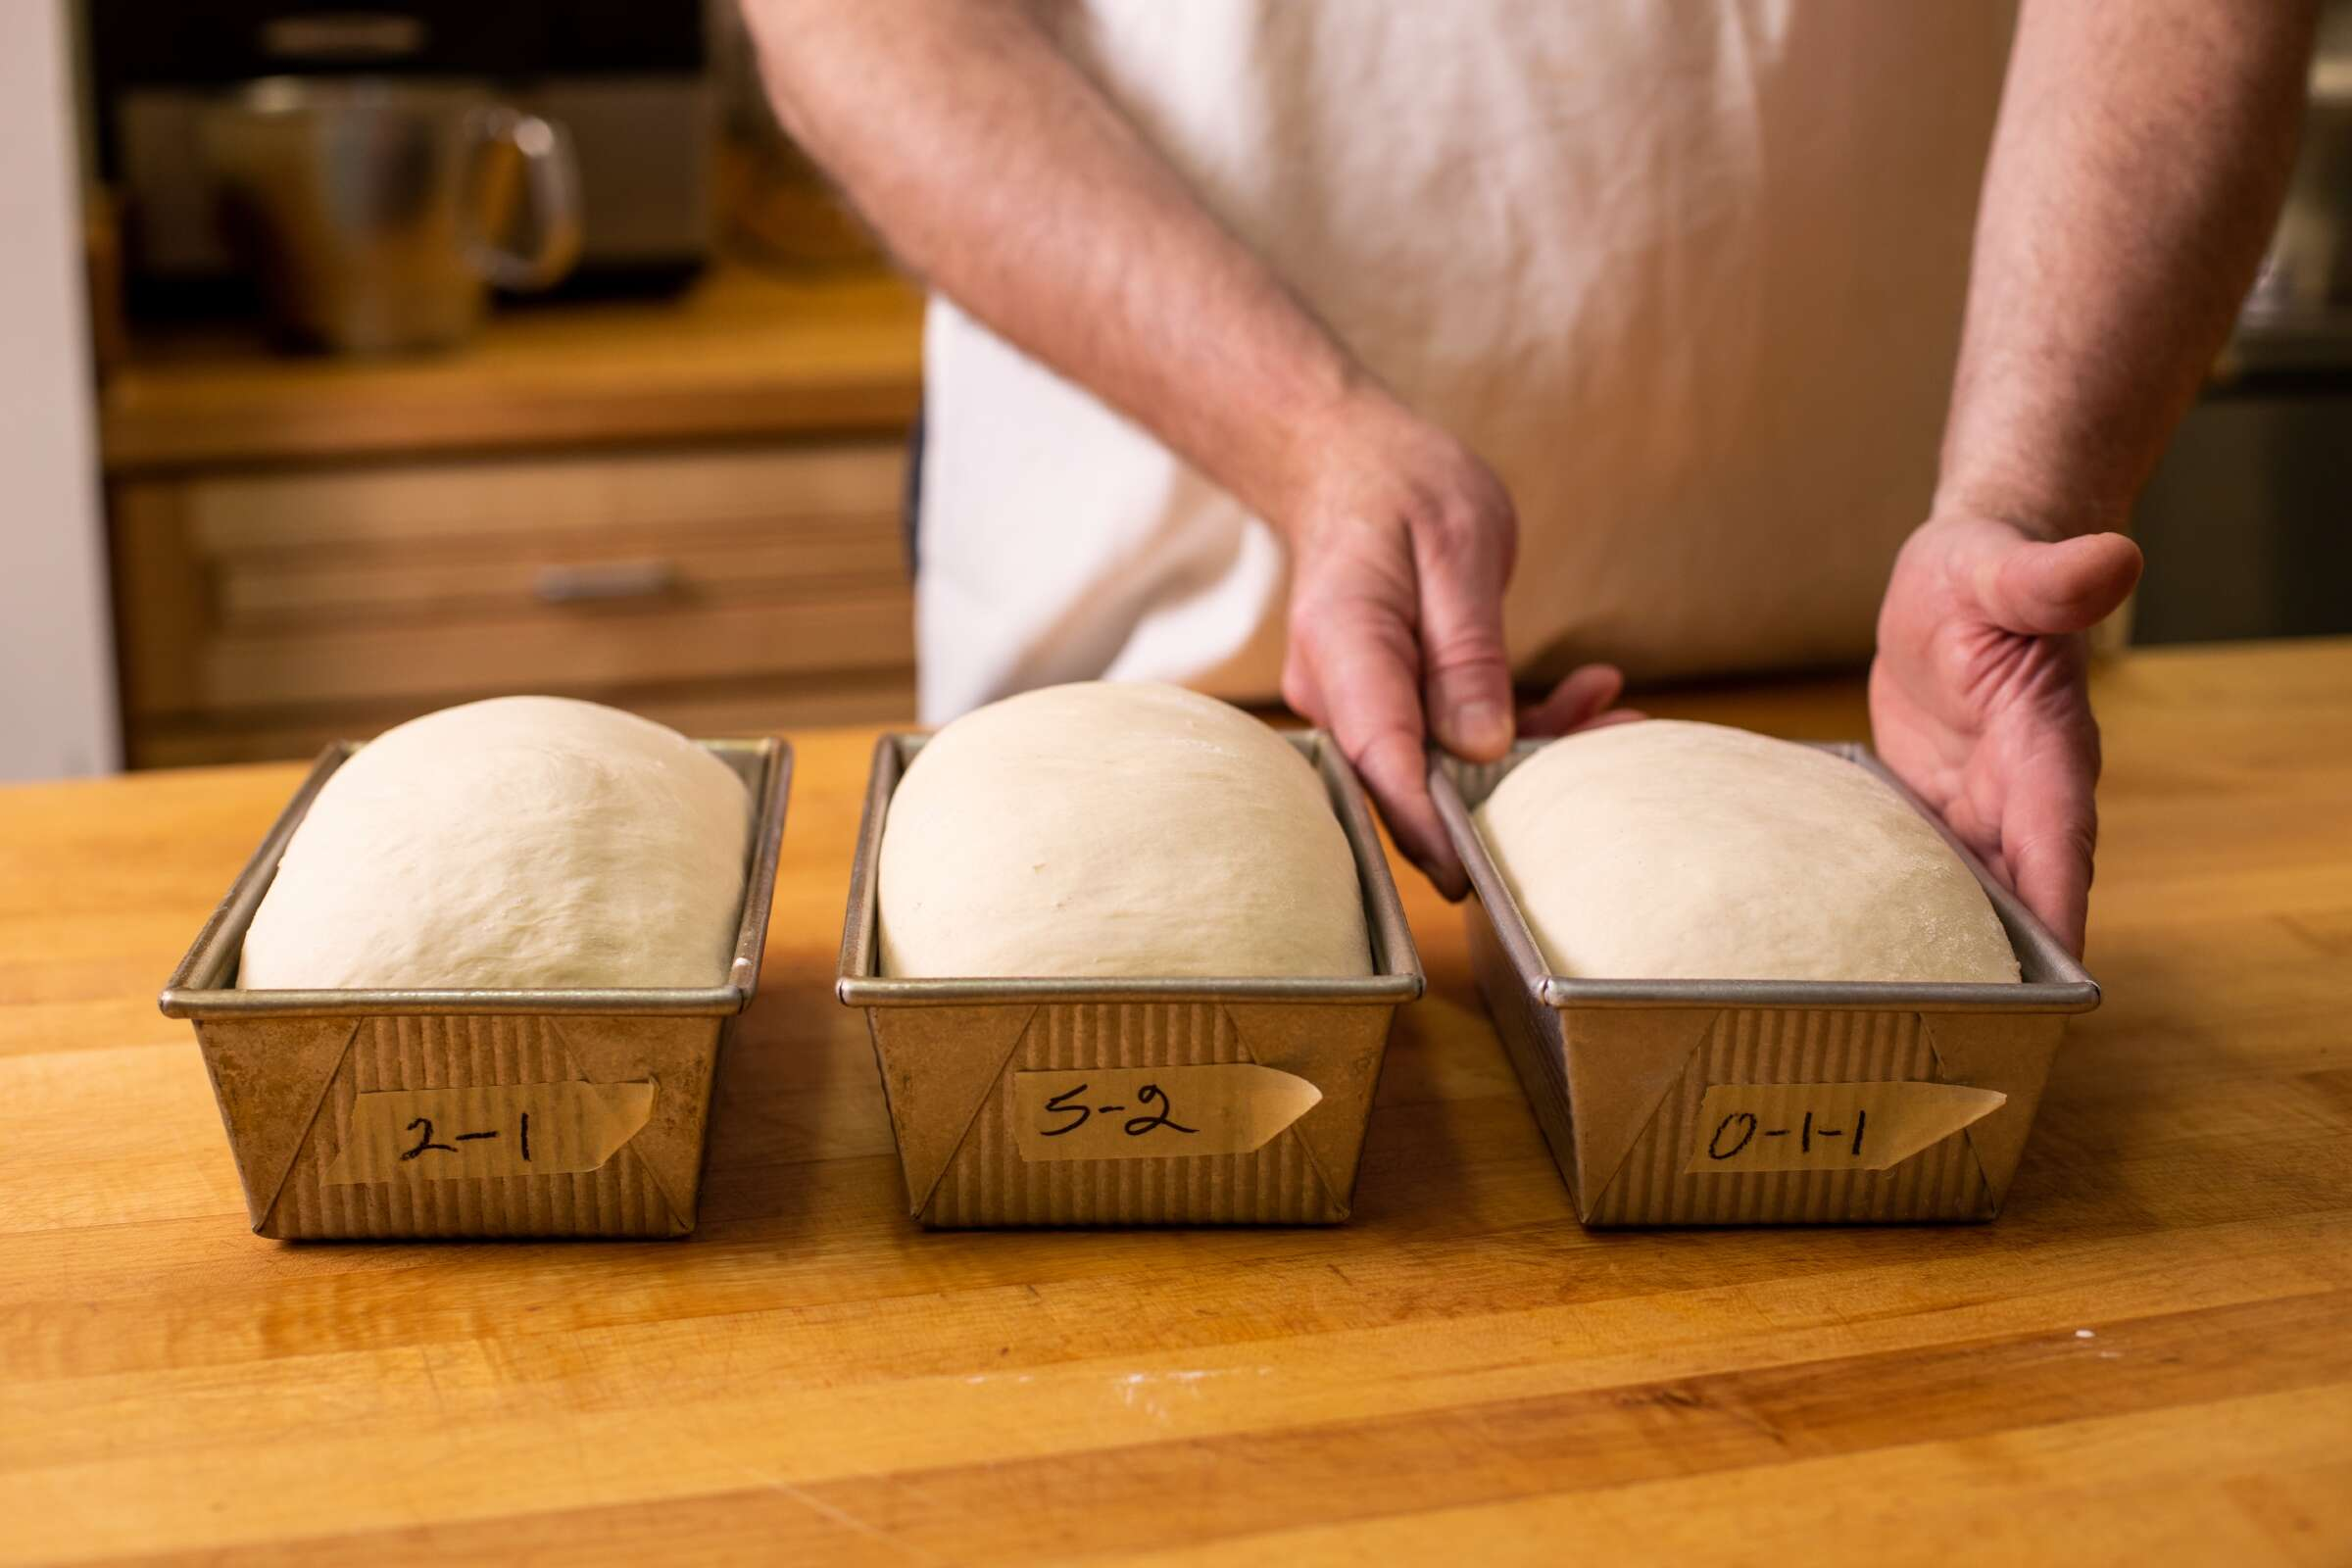 Dough sits in baking pans, ready for the oven